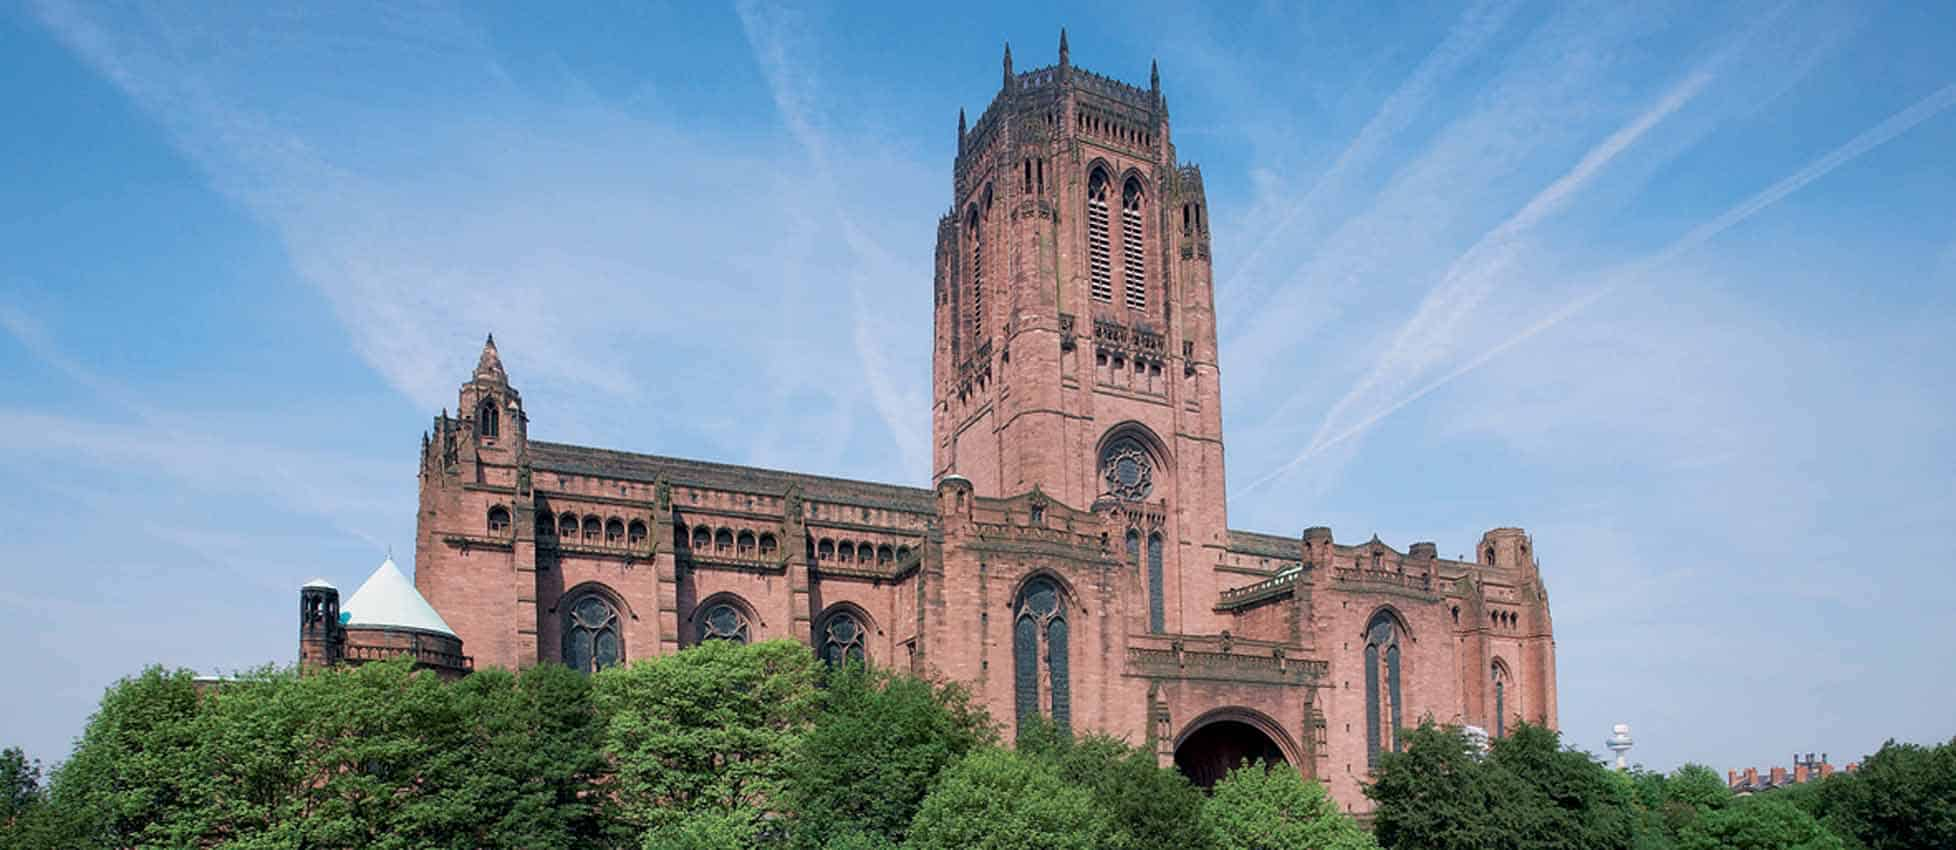 Cathedral_Liverpool2